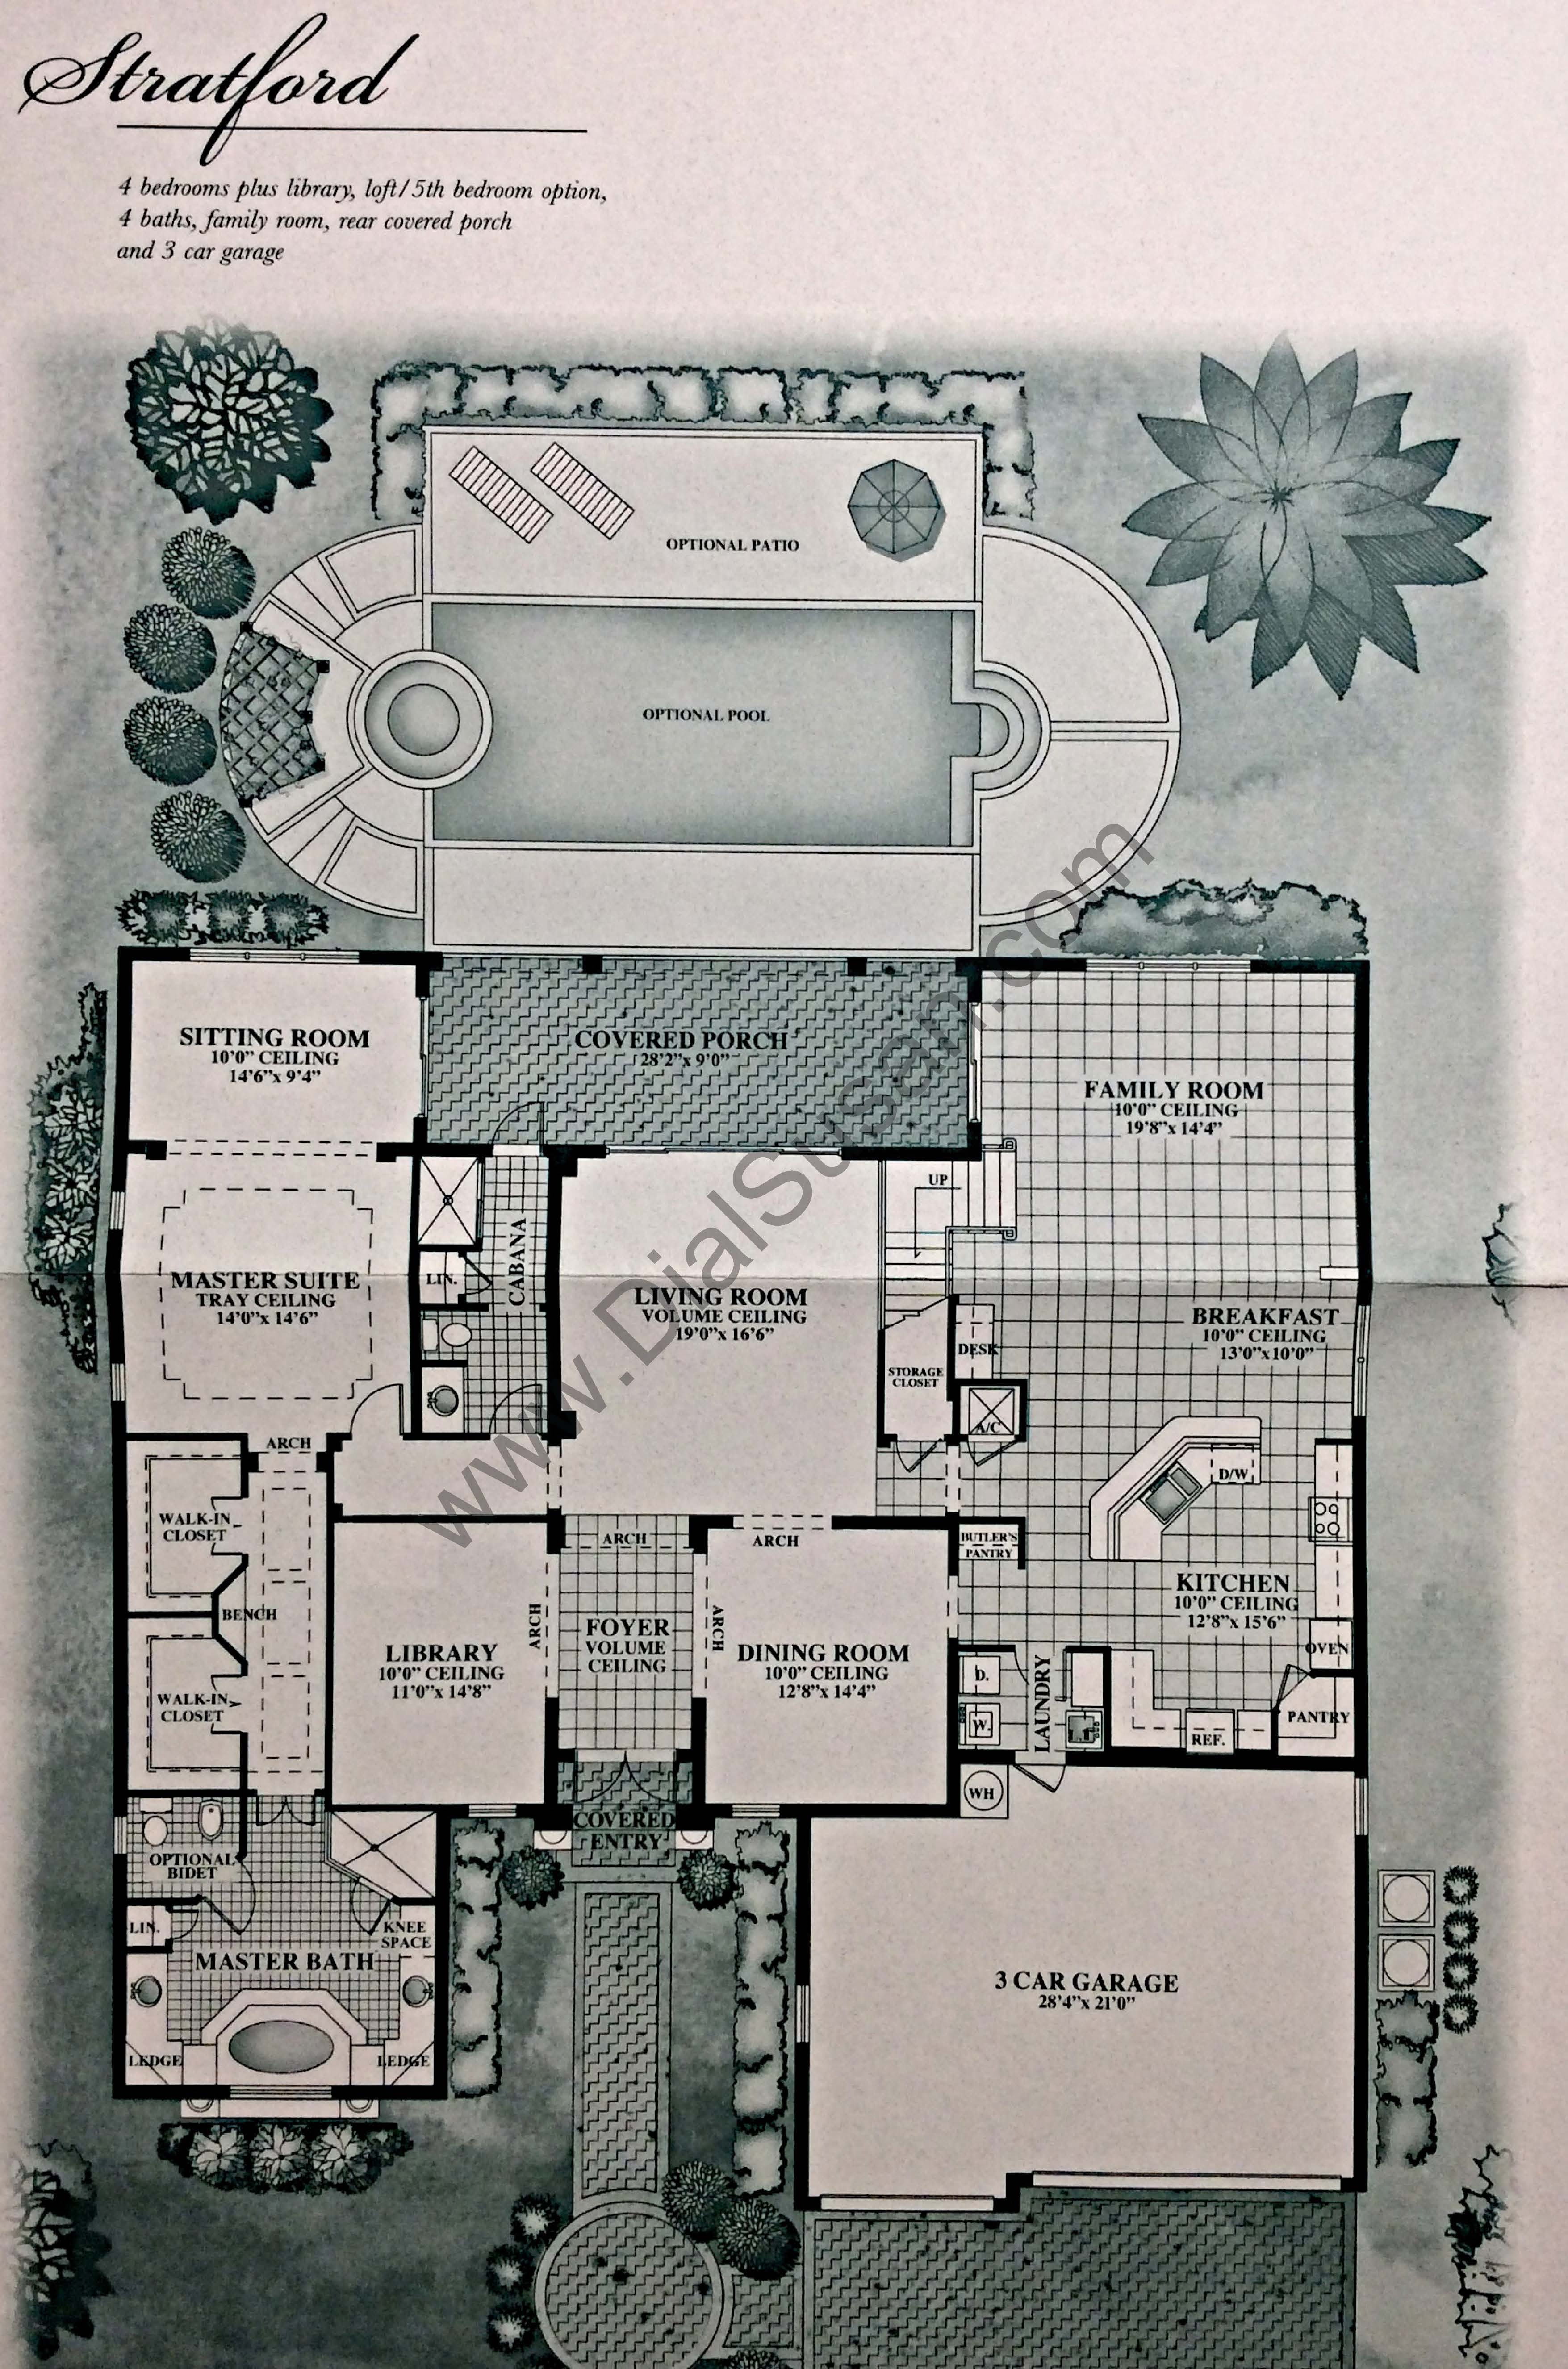 country glen floor plans and community profile homes for sale the stratford 1st floor